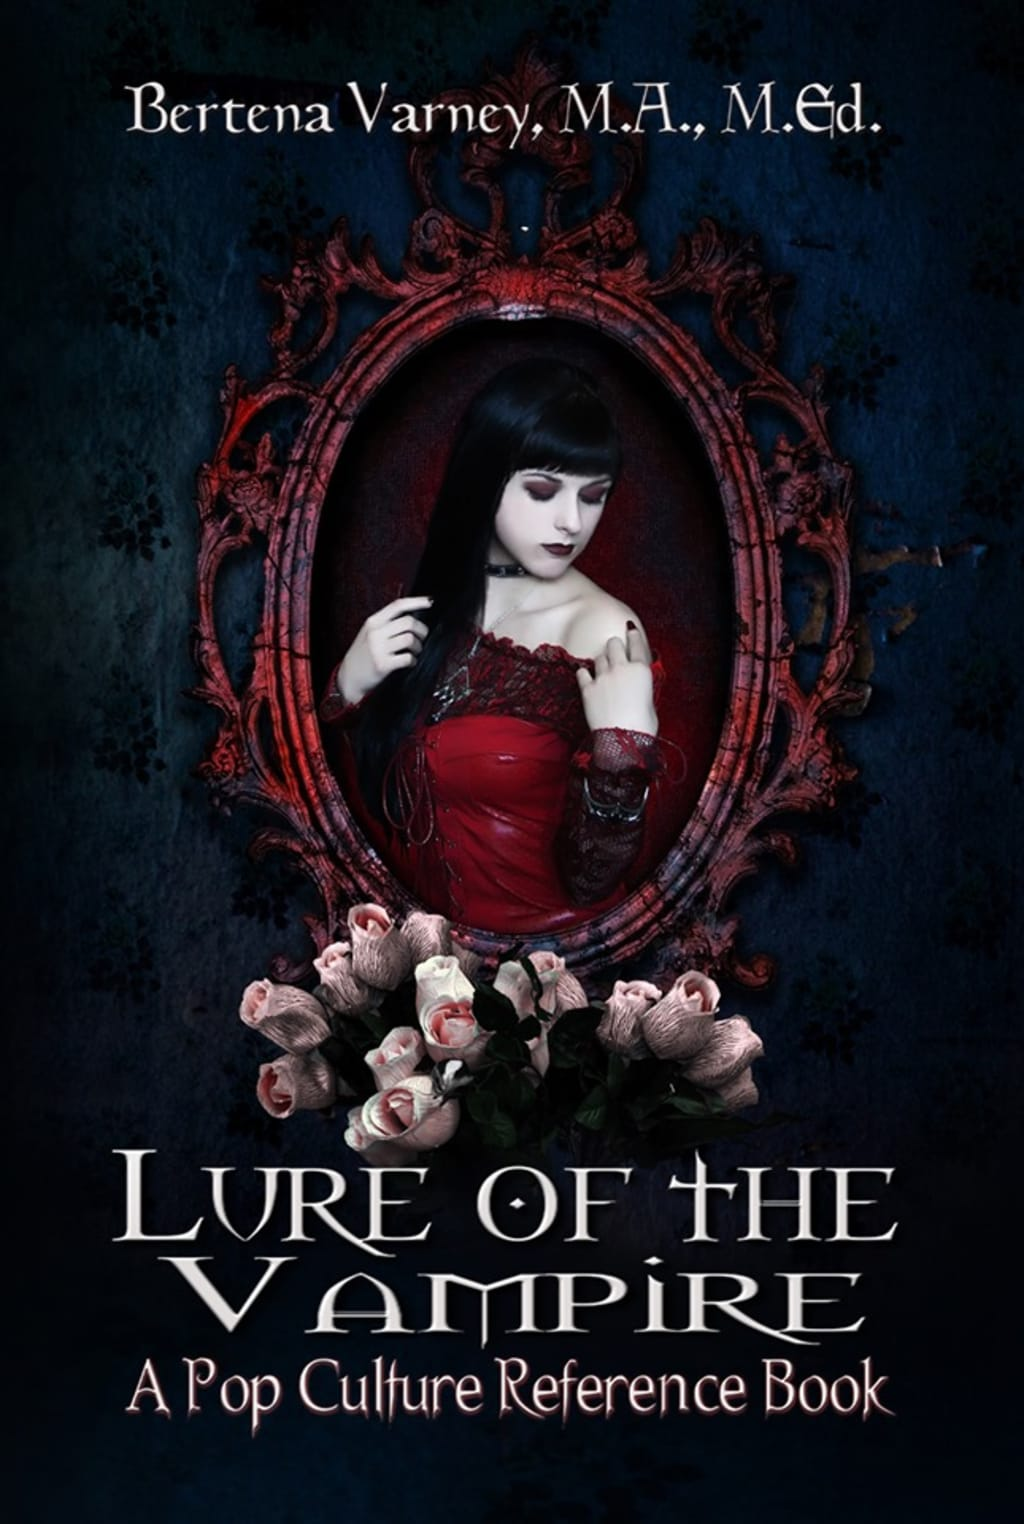 How Did Lure of the Vampire Come About?